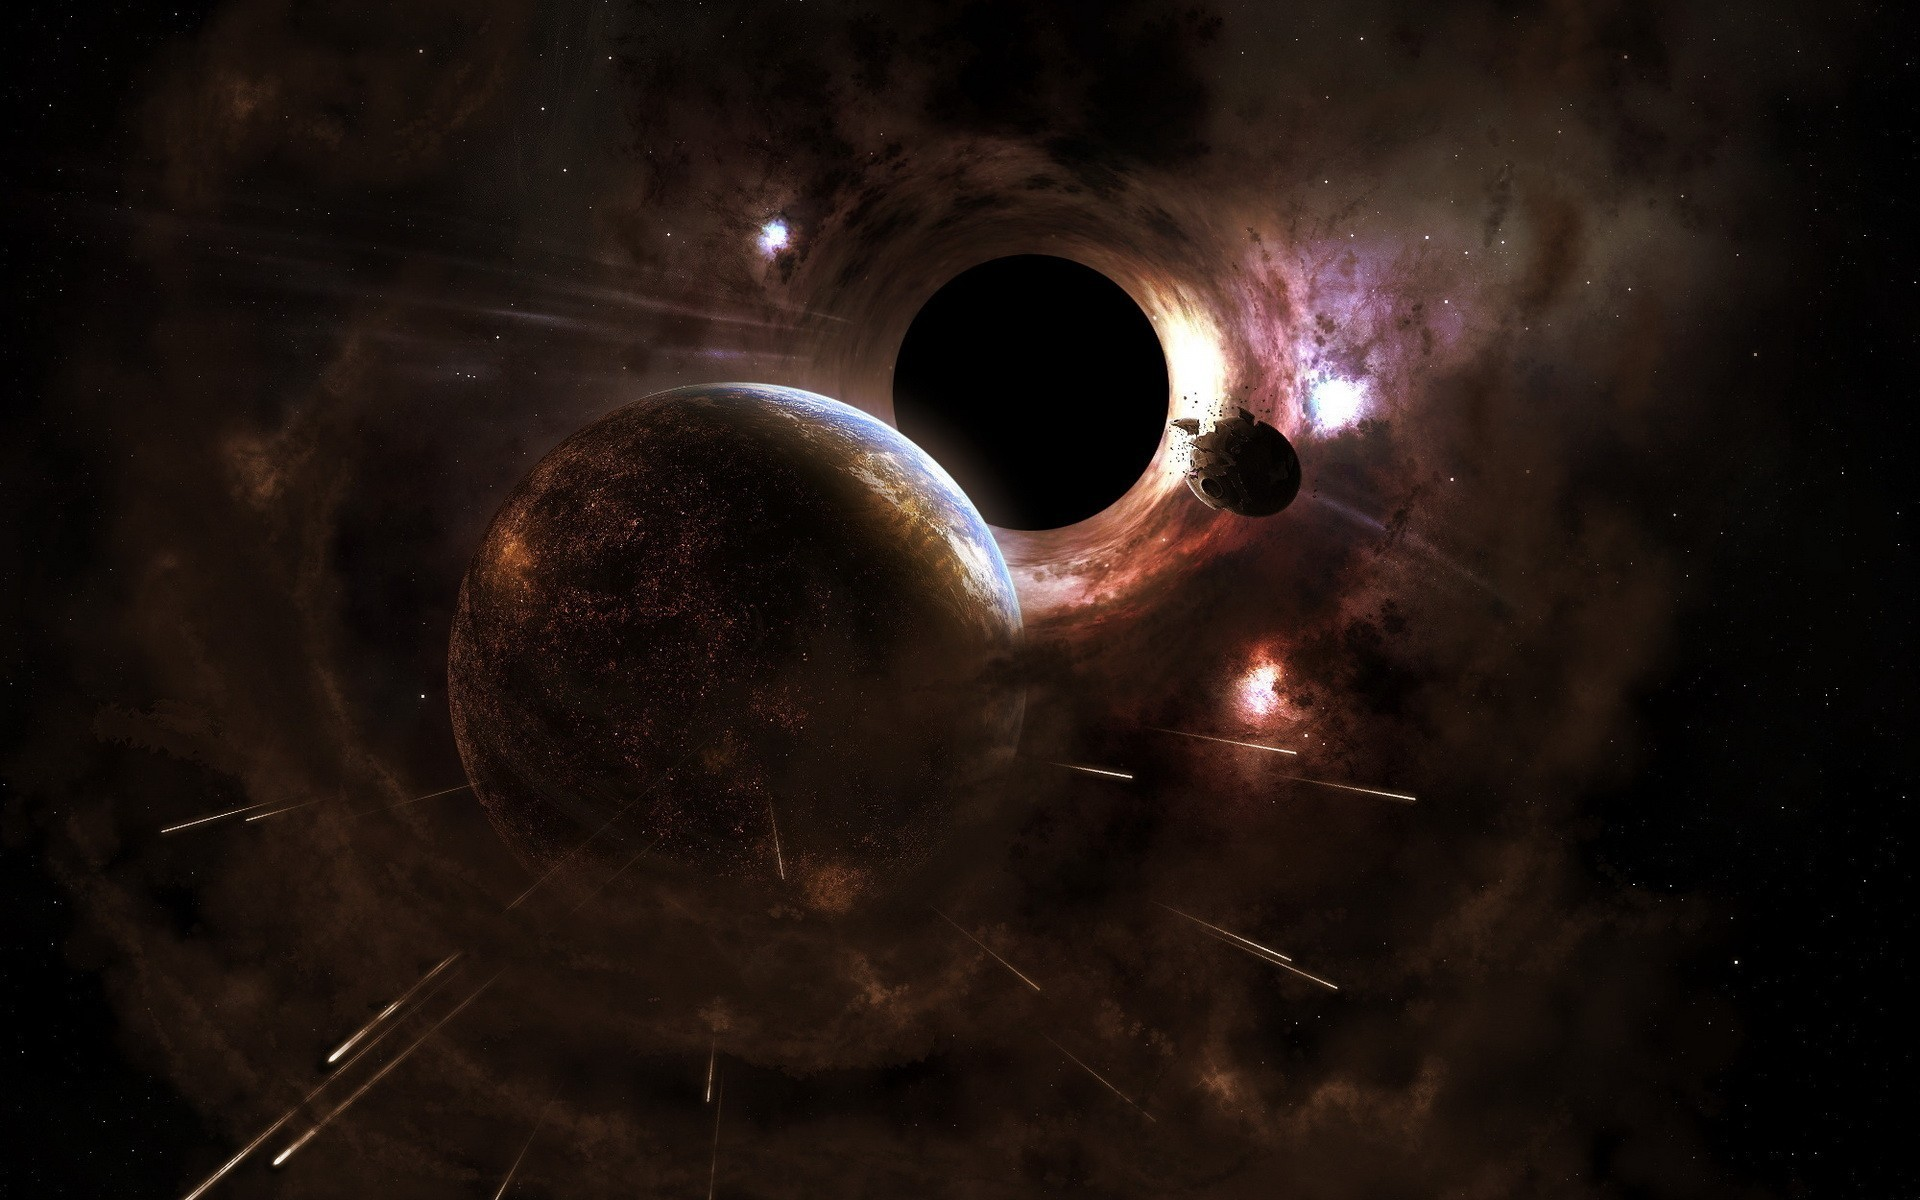 black hole cataclysm outer space planets stars wallpaper